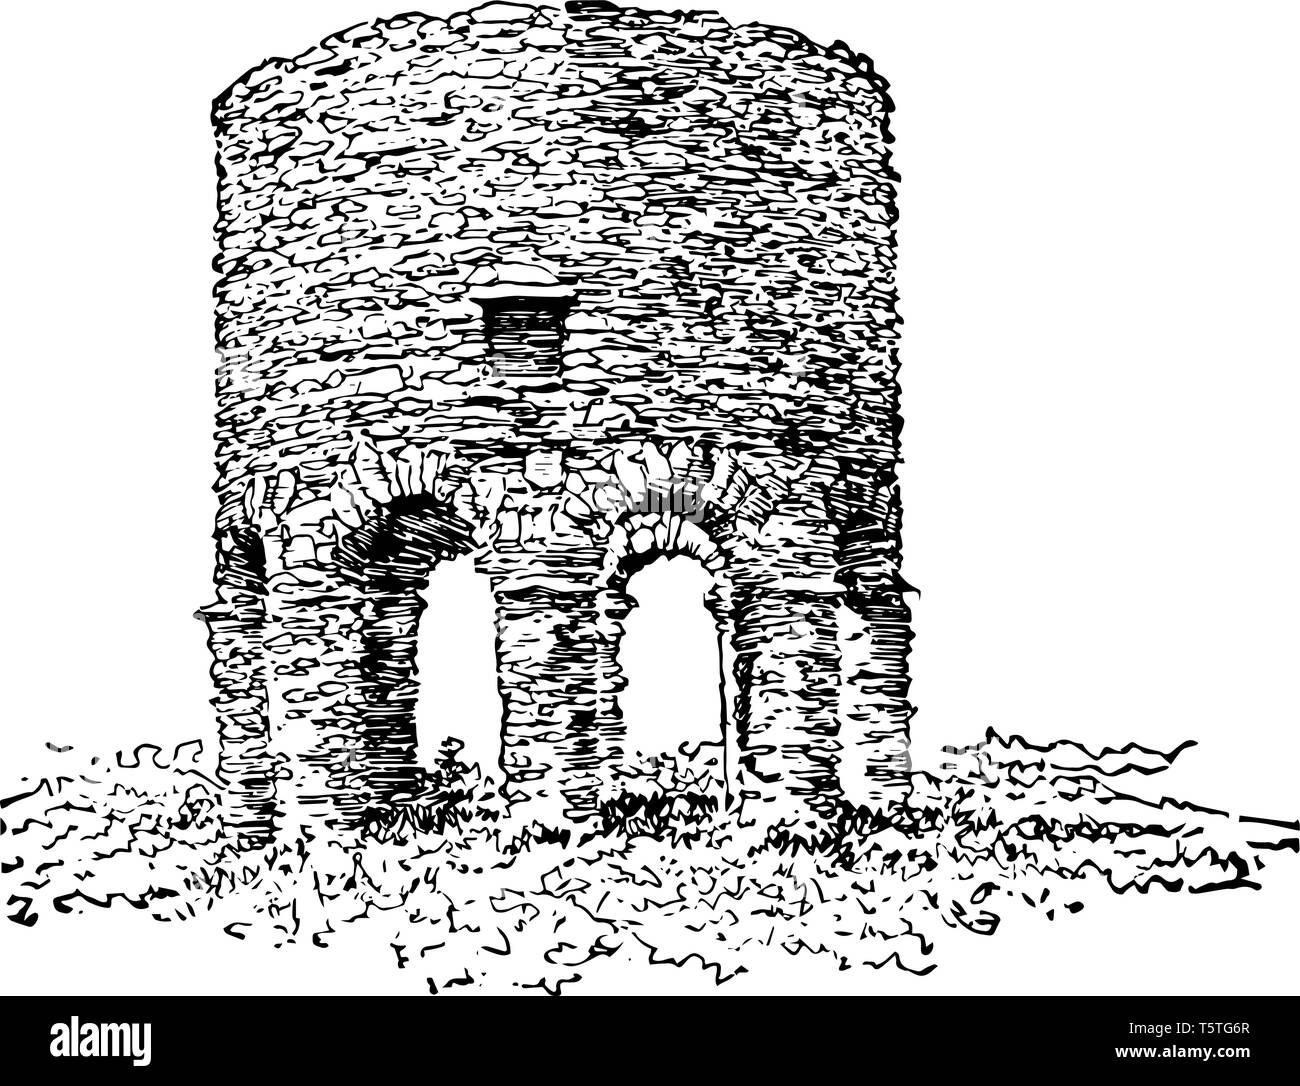 Old Stone Tower, Newport built in 17th century which is century's older which represents evidence of Pre Columbian Trans oceanic Contact vintage line  - Stock Vector